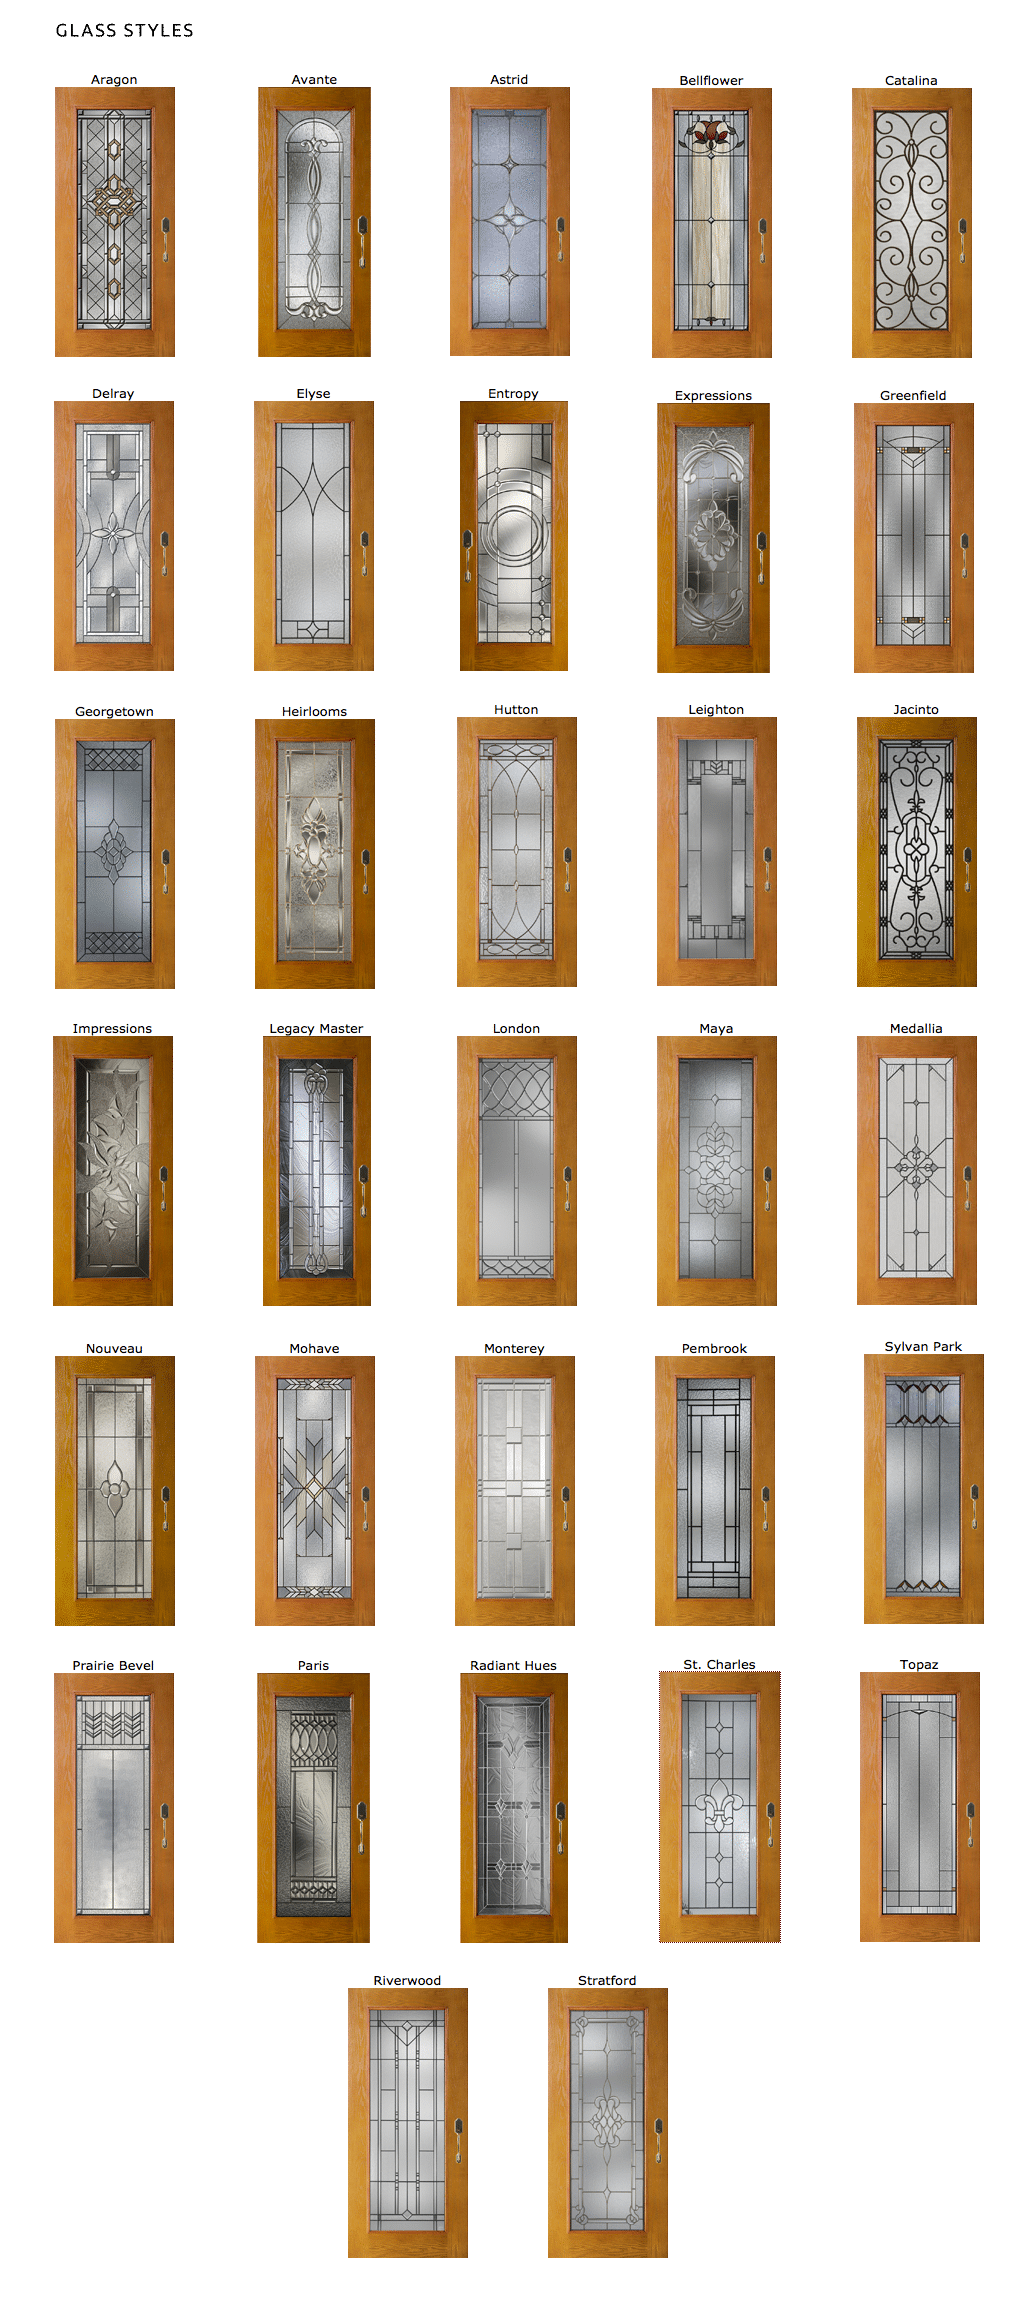 100 new front door london vibrant yellow paint ideas for fr